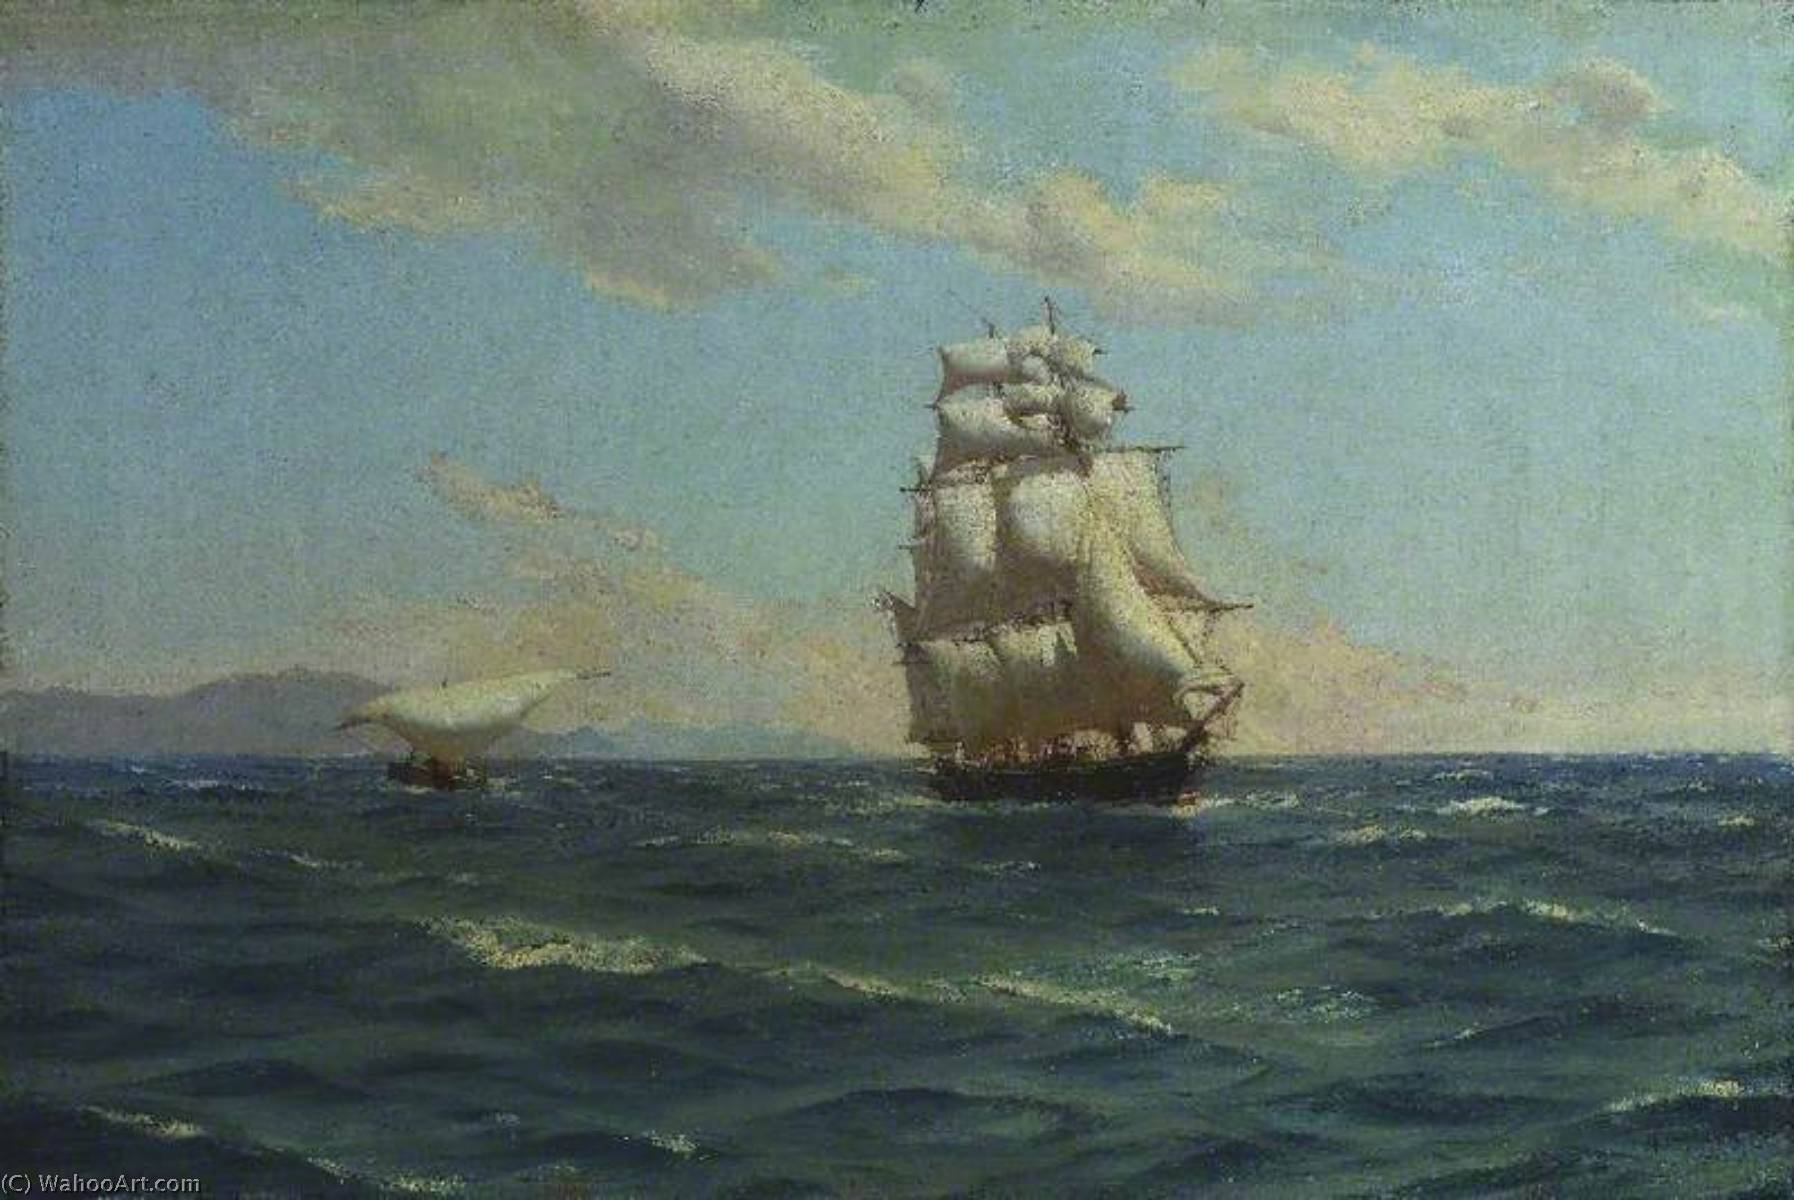 Off the Canaries (British Cruiser 'Auxiliary Steam'), Oil On Canvas by Thomas Jacques Somerscales (1842-1927)